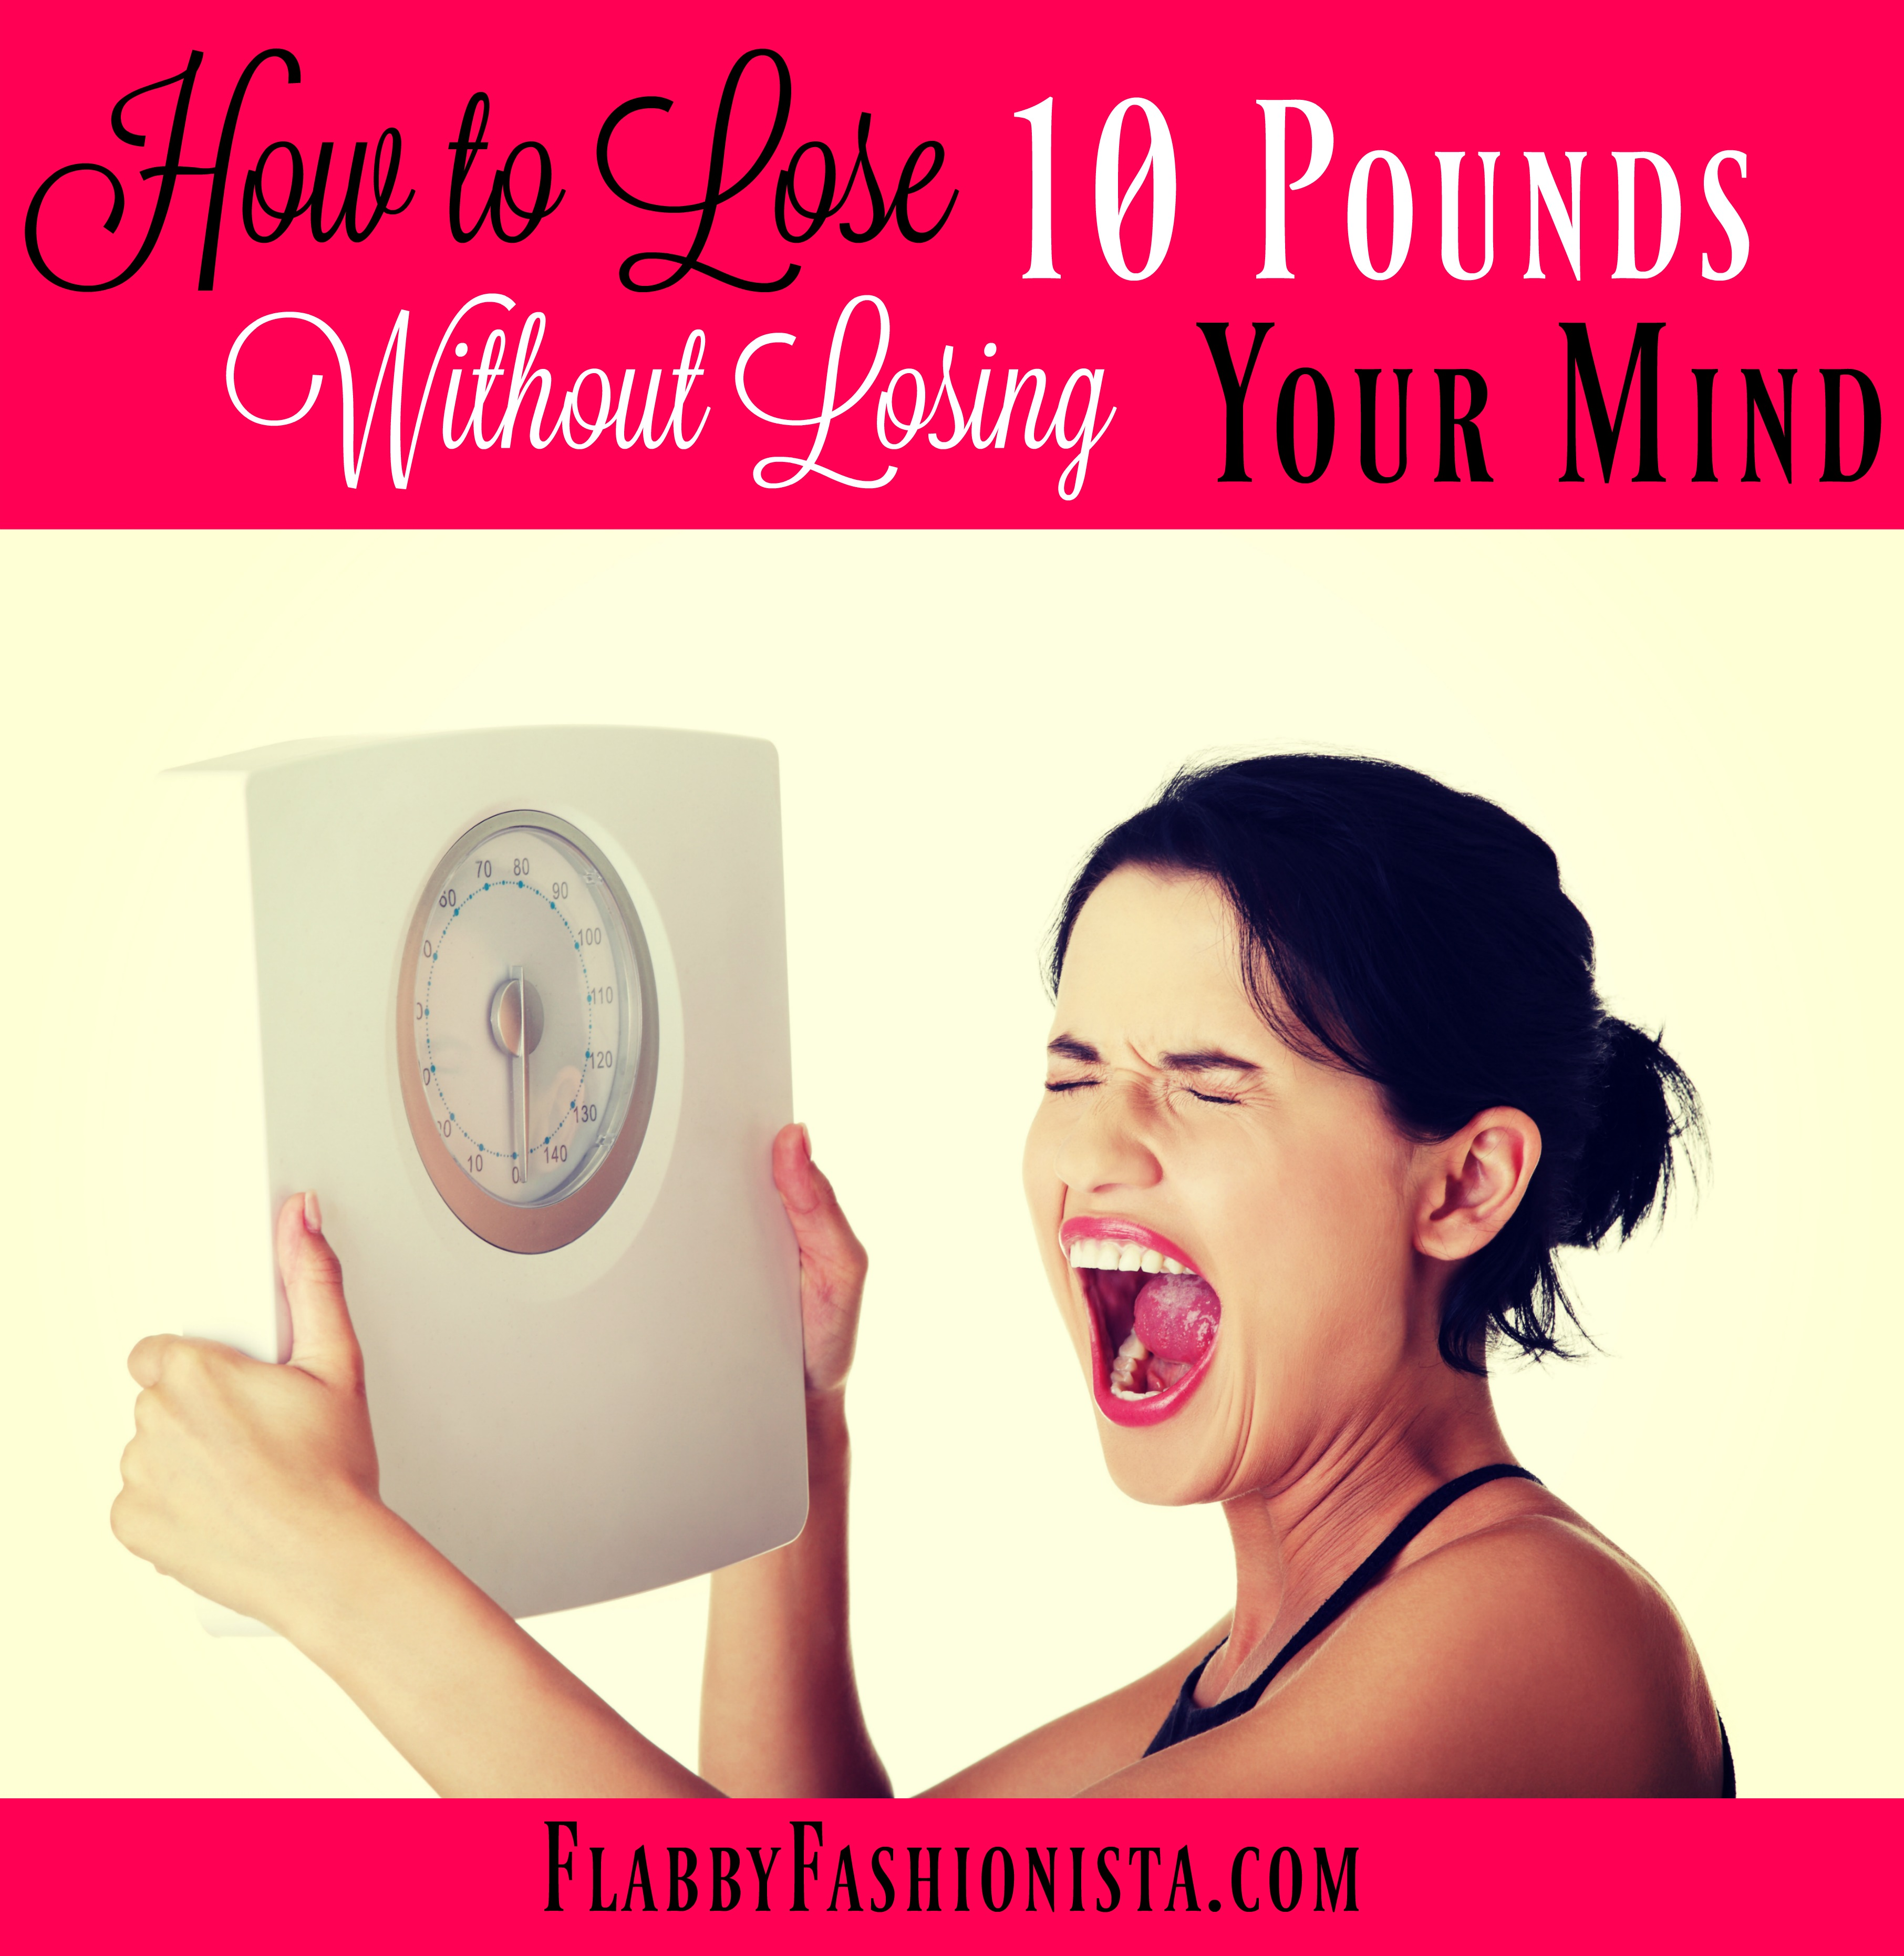 how to lose 10 pounds without losing your mind